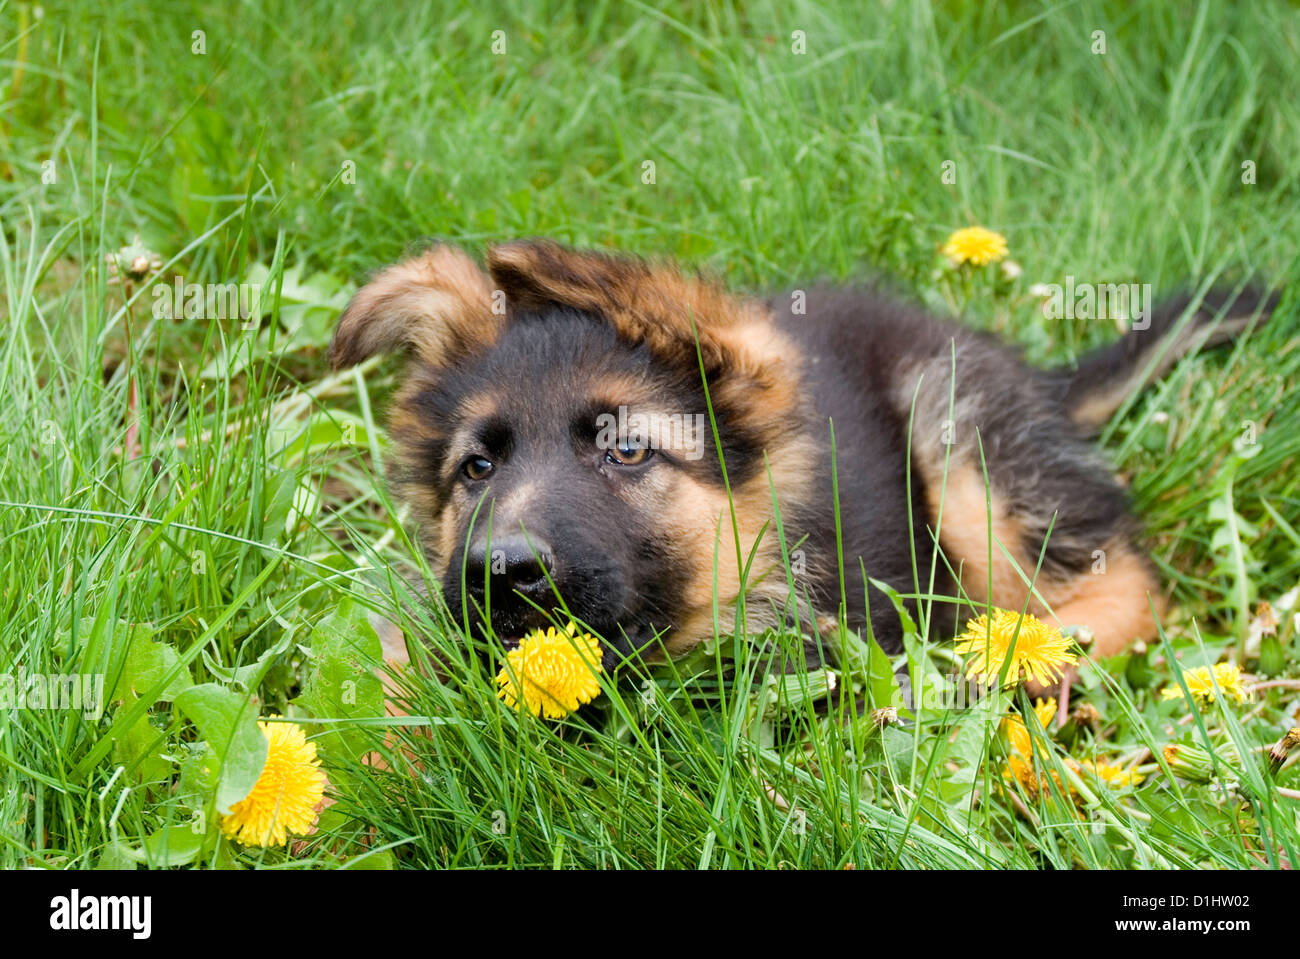 Young Alsatian dog in the grass - Stock Image